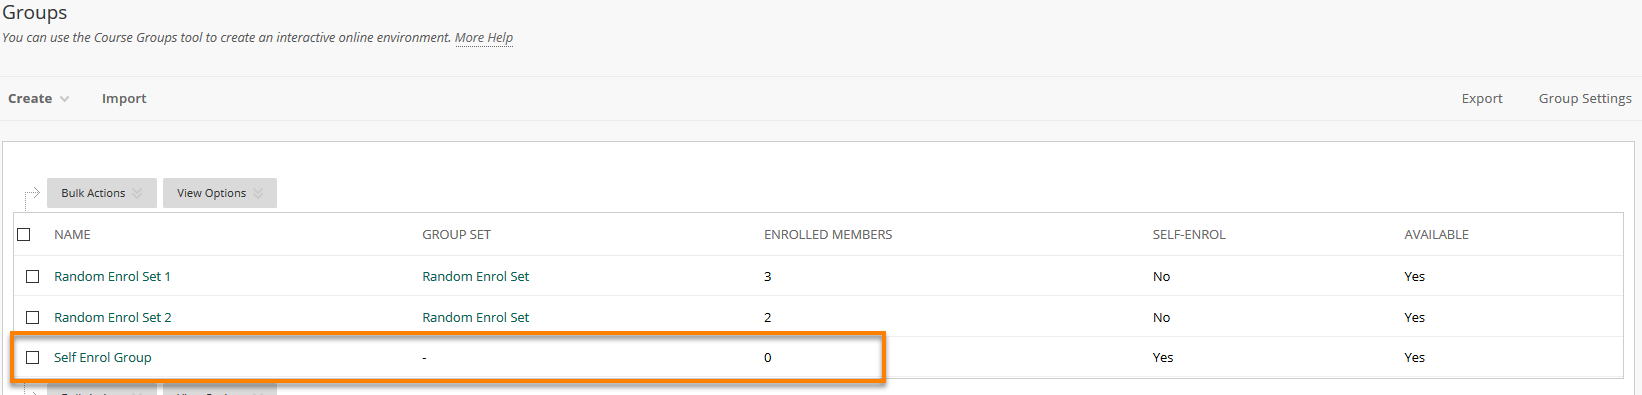 Showing self enrol group in Groups page